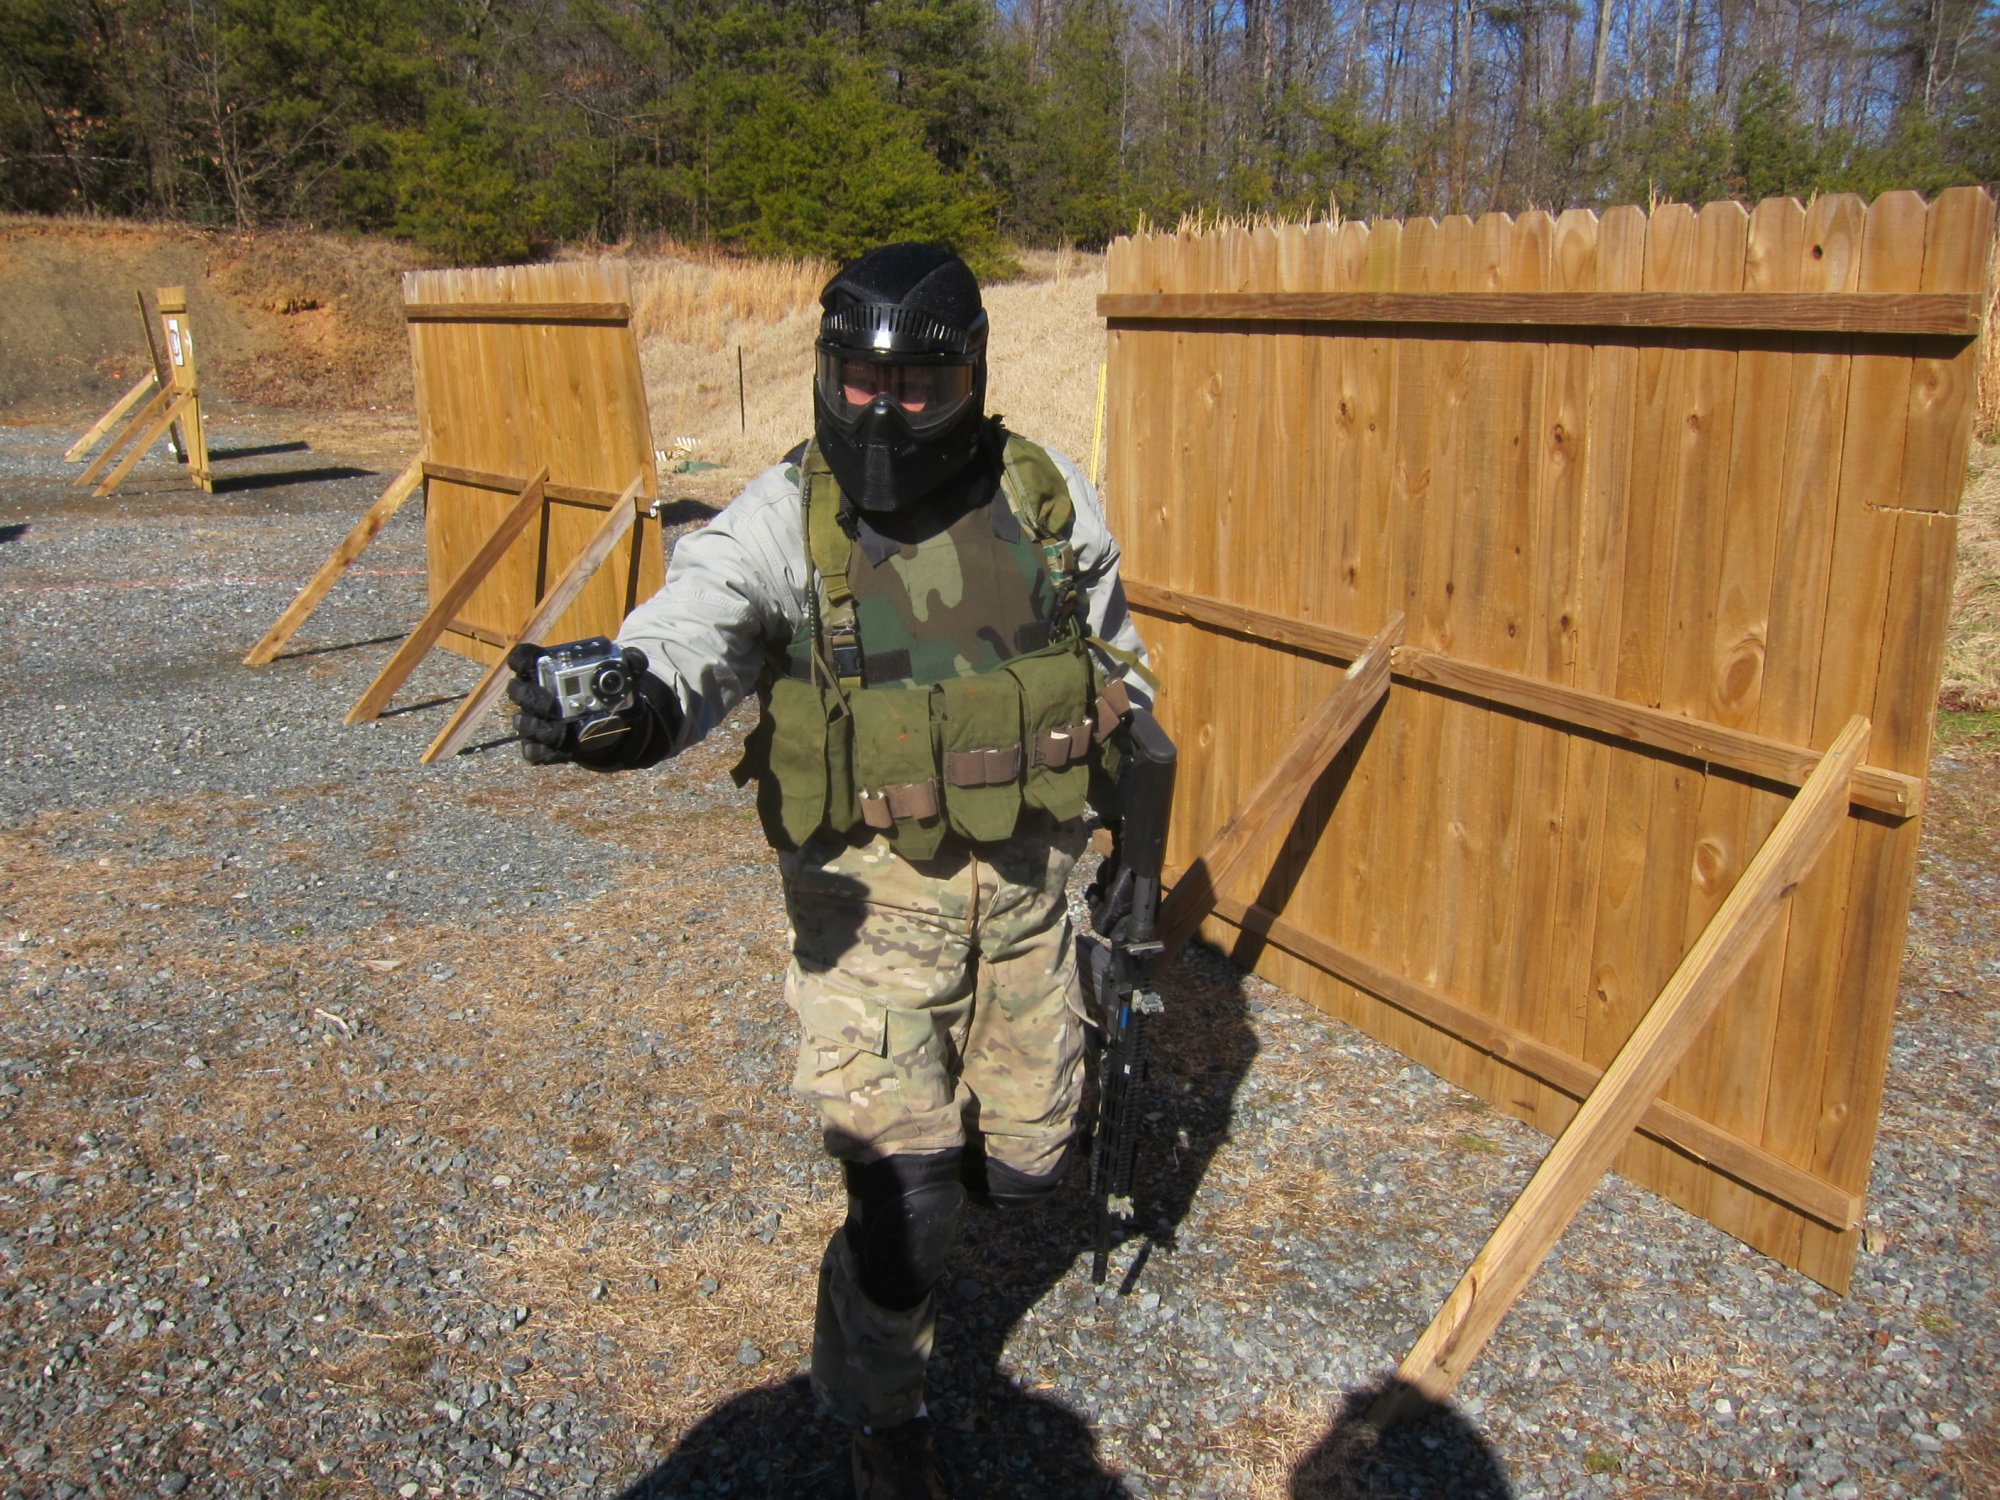 UTM Ammo Ultimate Training Munitions Ammunition Phoenix RBT Solutions Force On Force Training Ammo PDT Tech Protective Gear DefenseReview.com DR 2012 3 Ultimate Training Munitions (UTM) 5.56mm Man Marker Round (MMR) Force On Force Training Ammunition/Marking Cartridges in SureFire MAG5 60 HCM 60 Shot Quad Stack AR 15/M16 Rifle Magazine: Gunfighting Training Made Awesome!